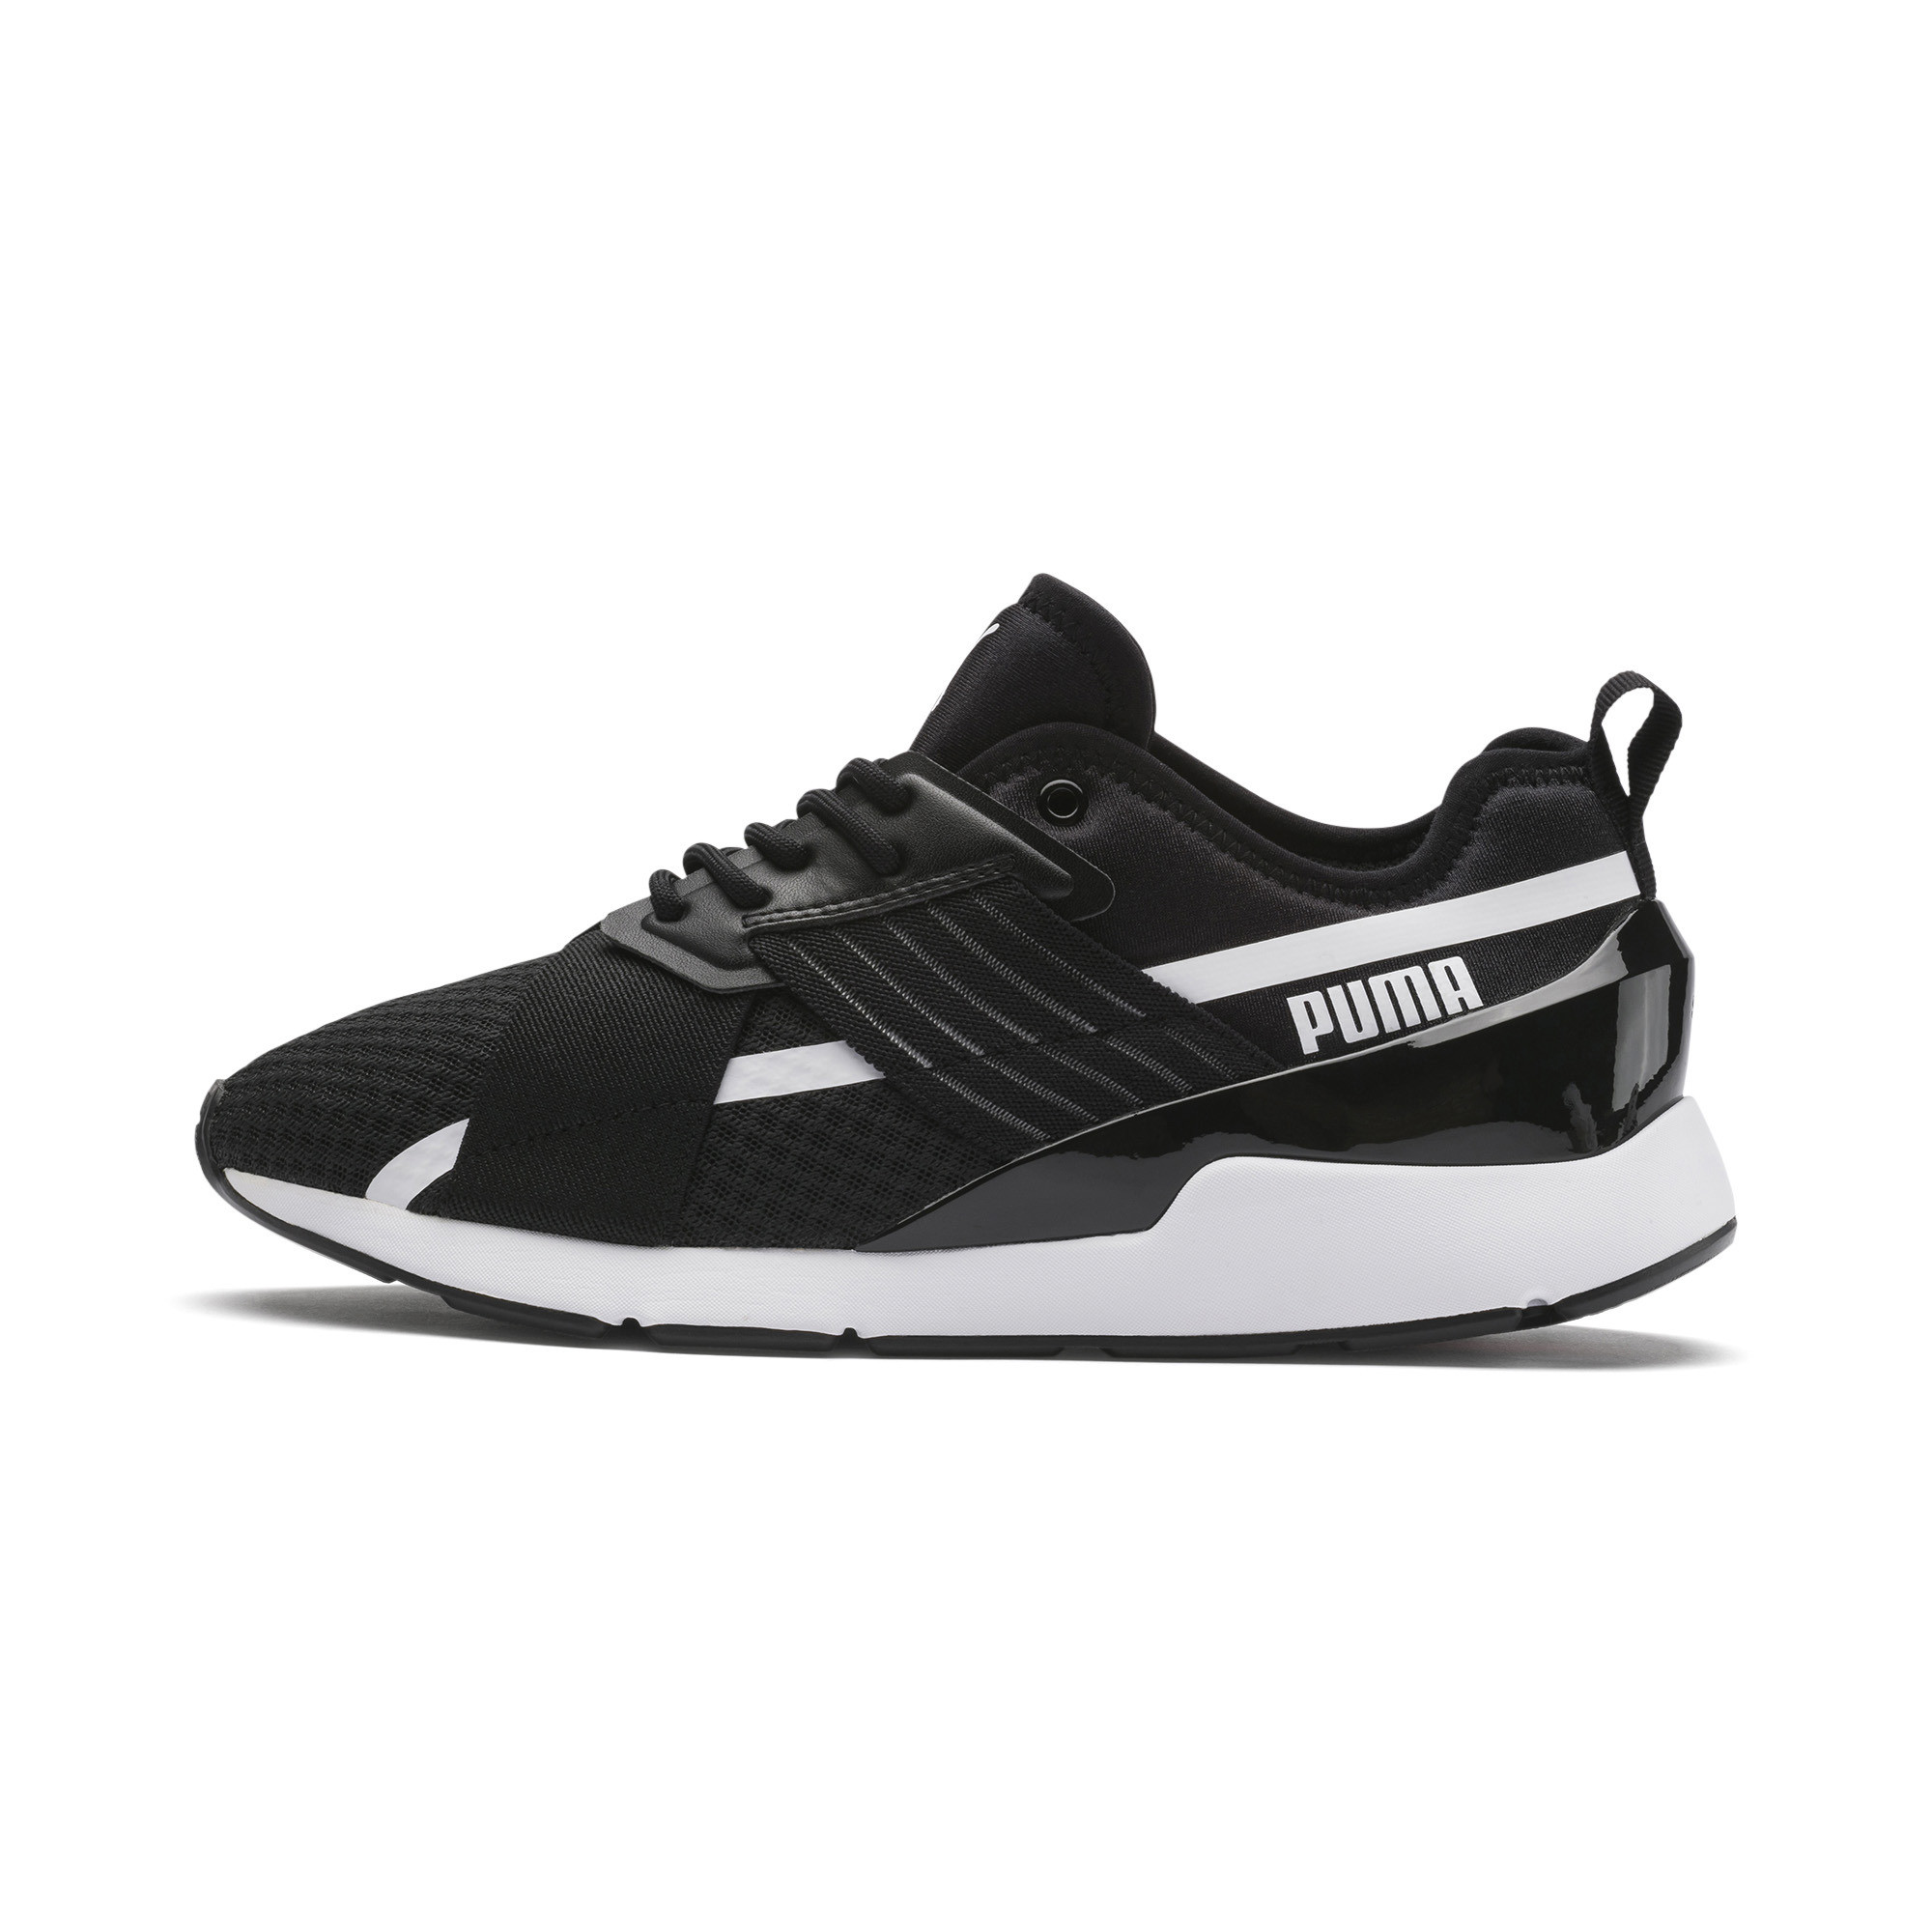 PUMA-Muse-X-2-Women-039-s-Sneakers-Women-Shoe-Evolution thumbnail 11